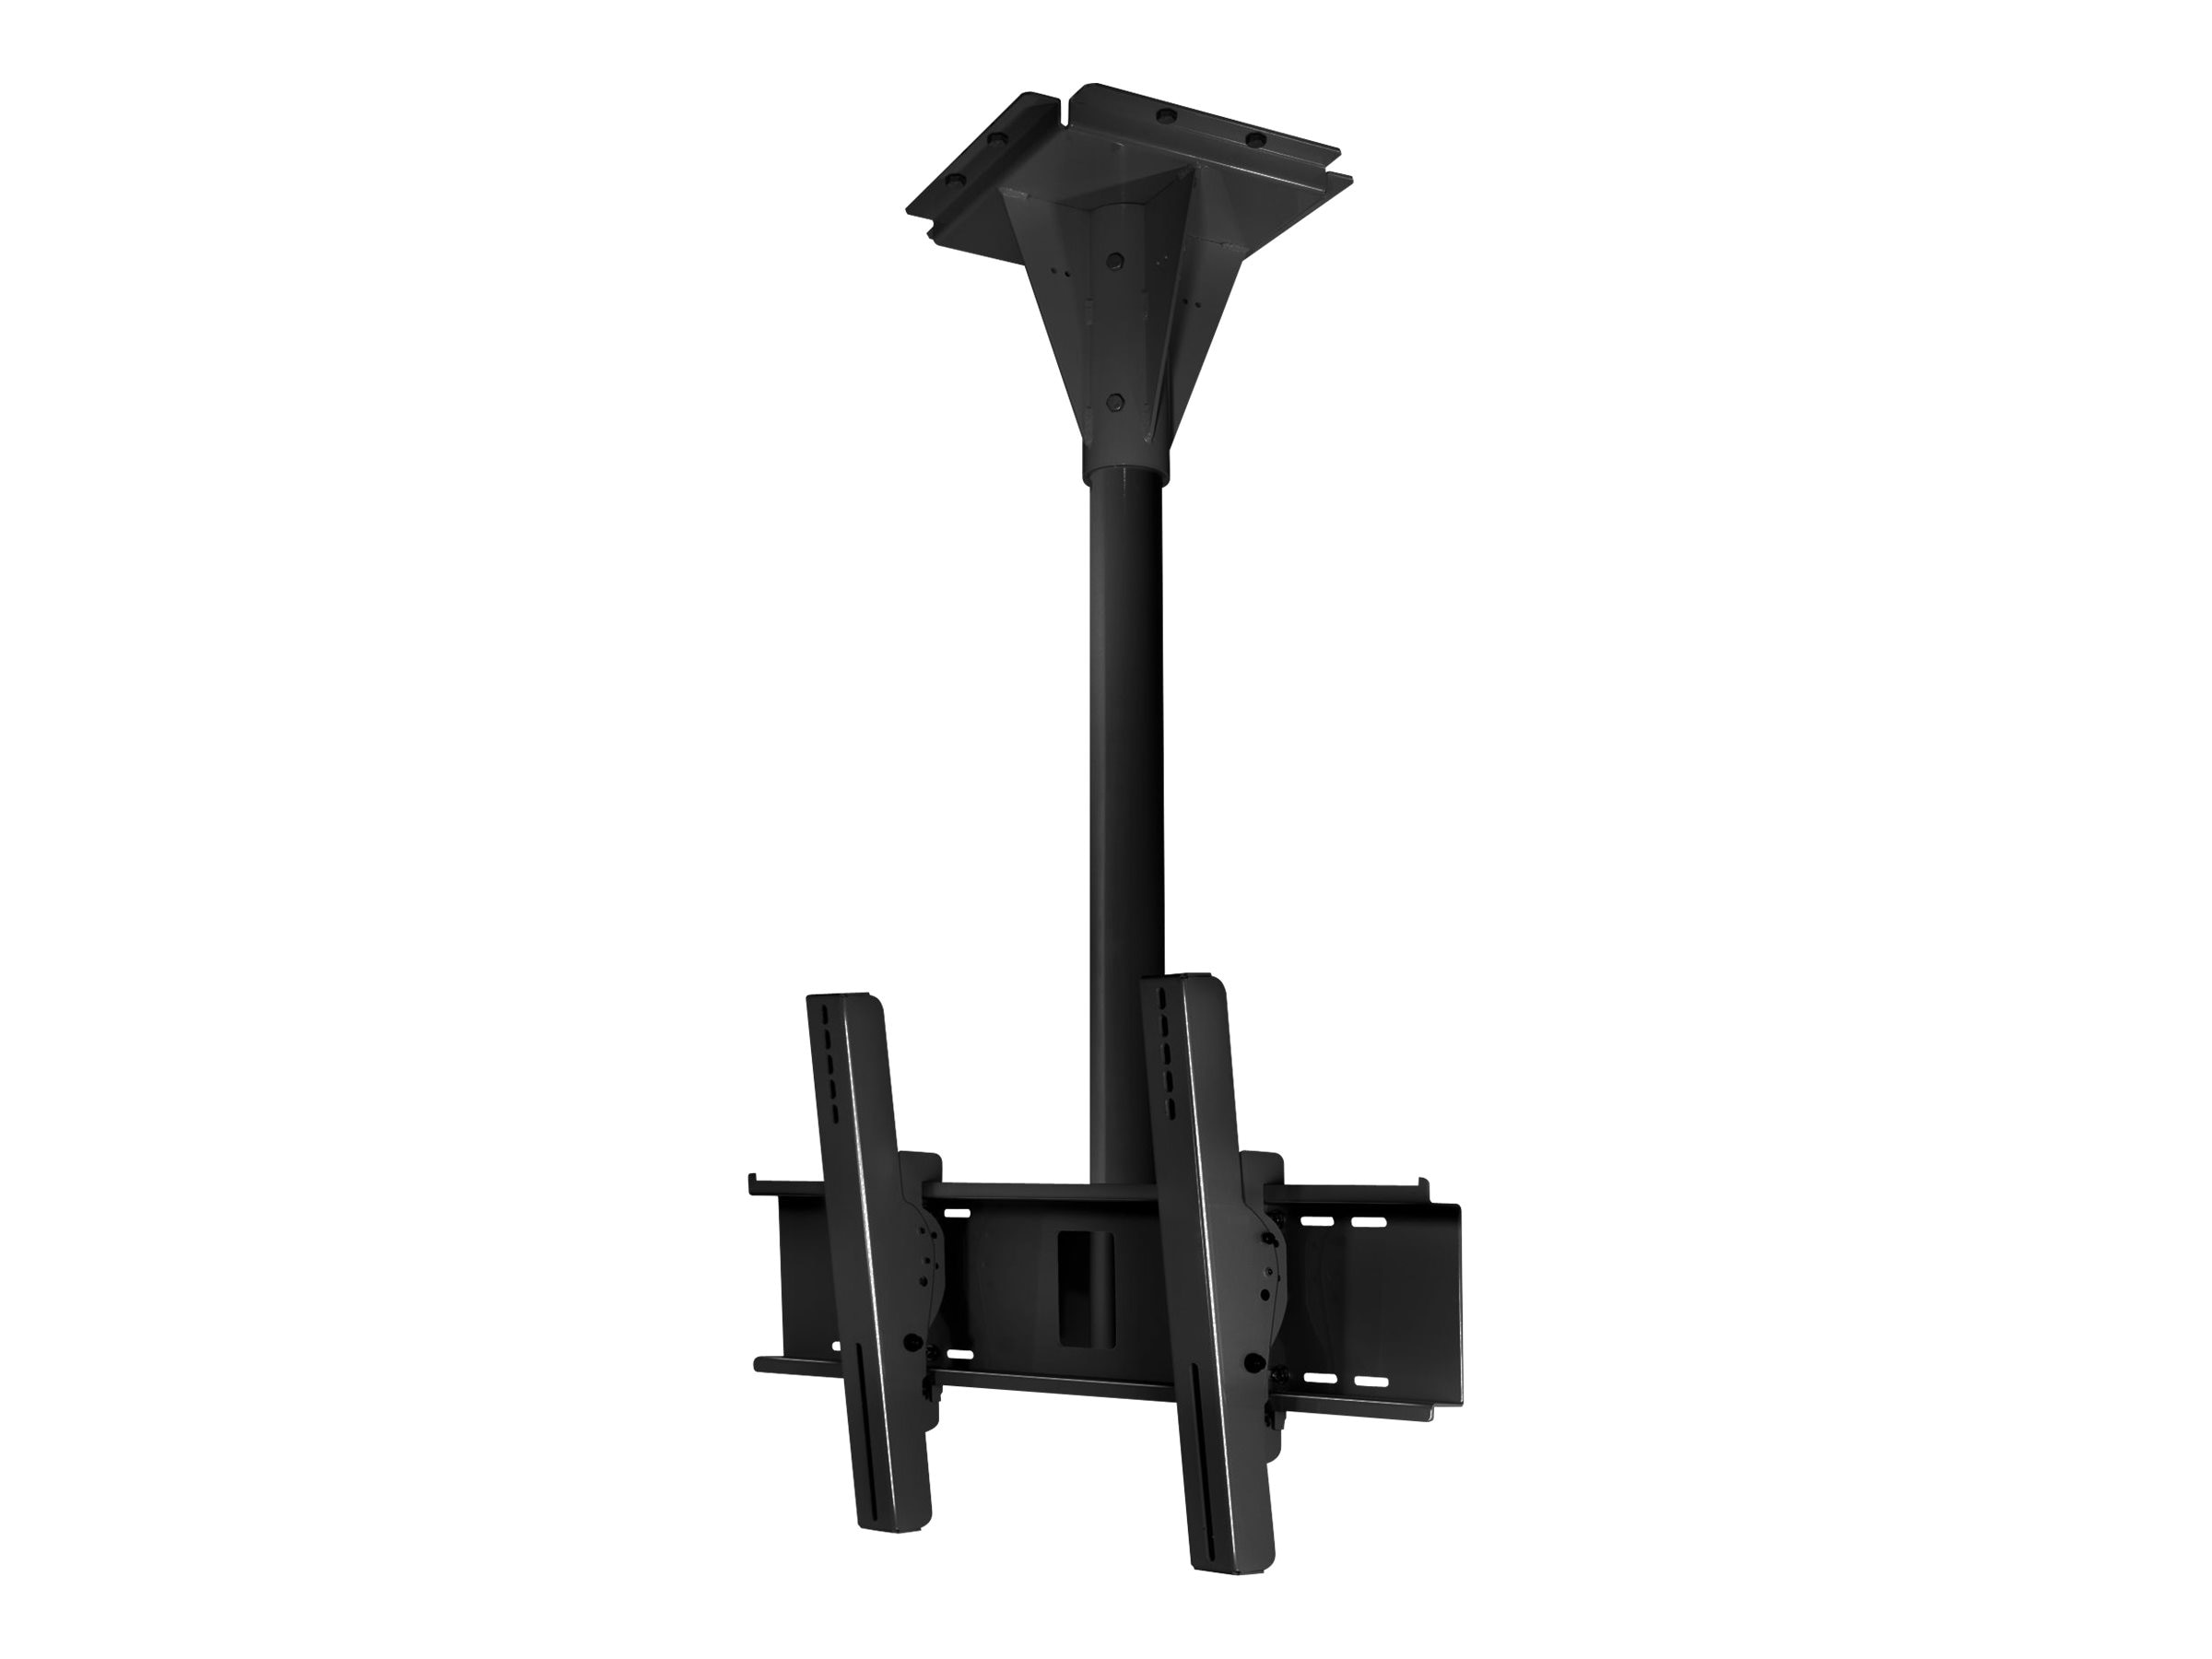 Peerless Wind Rated Concrete Ceiling Tilt Mount for 32-65 Outdoor Displays, Black